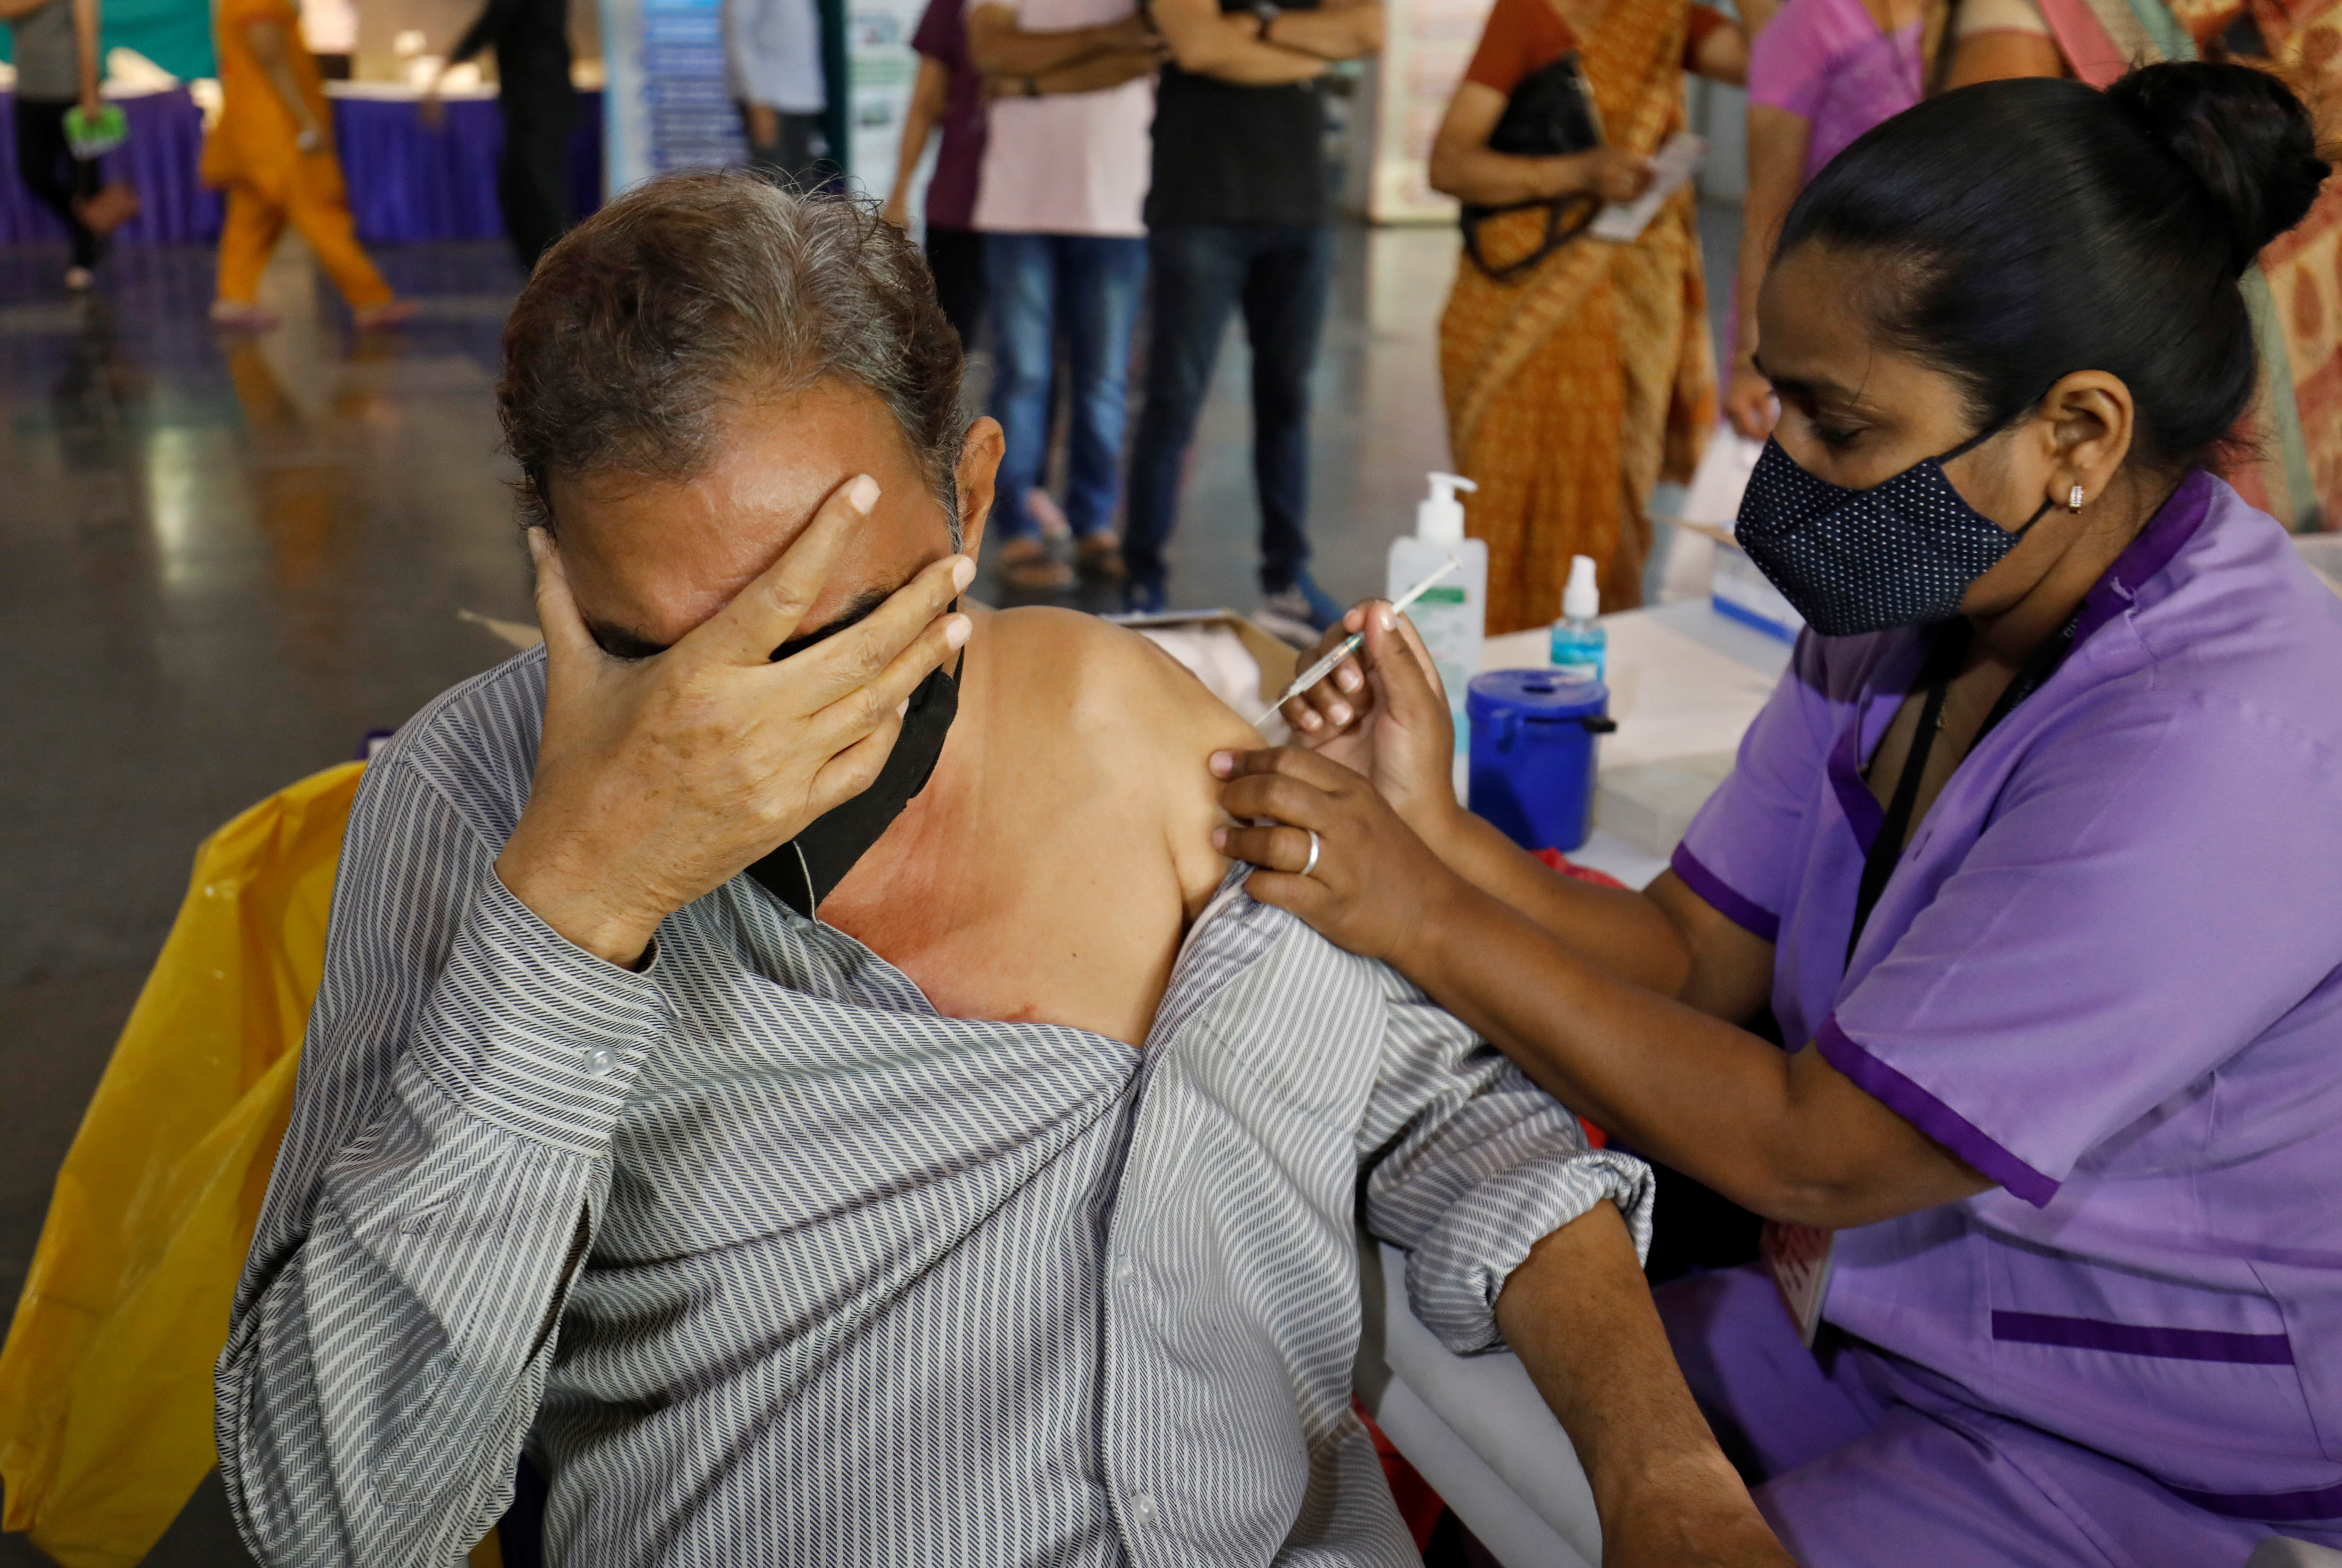 A man reacts as he receives a dose of COVISHIELD, a coronavirus disease (COVID-19) vaccine manufactured by Serum Institute of India, at an auditorium, which has been converted into a temporary vaccination centre, in Ahmedabad, India, March 26, 2021. REUTERS/Amit Dave/Files